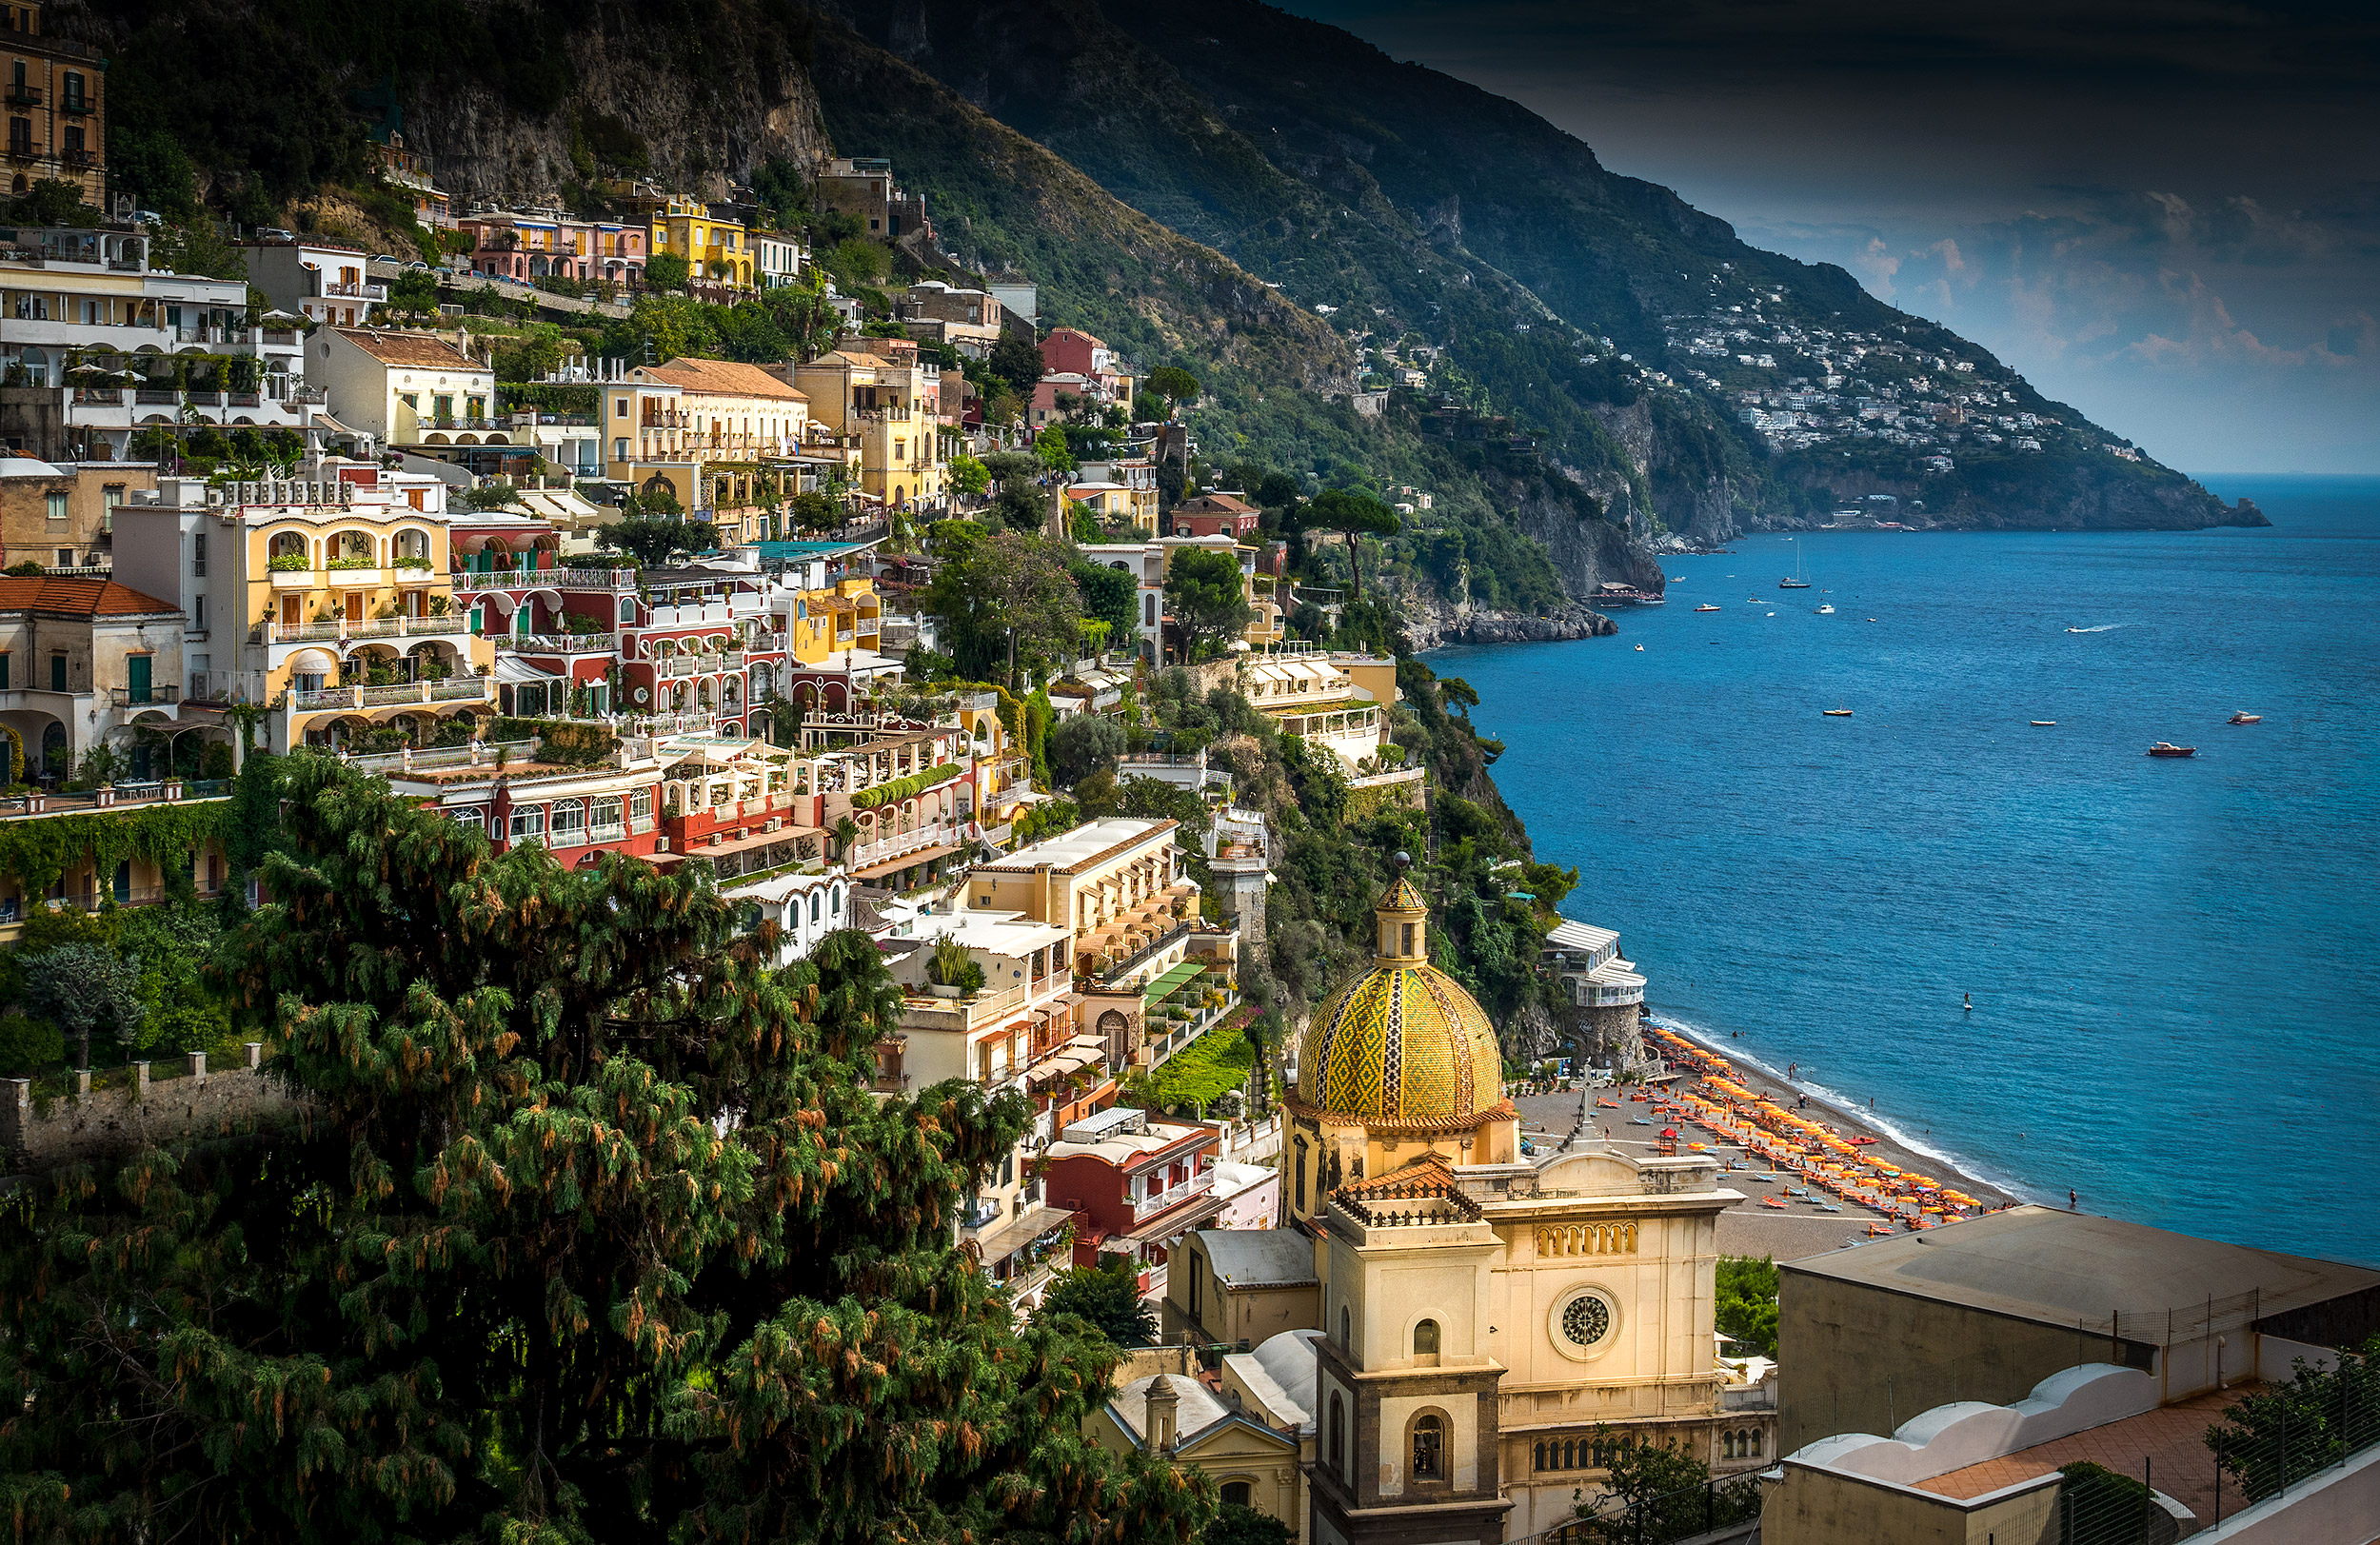 Desktop Wallpapers Cities Positano Italy Amalfi Coast 2500x1623